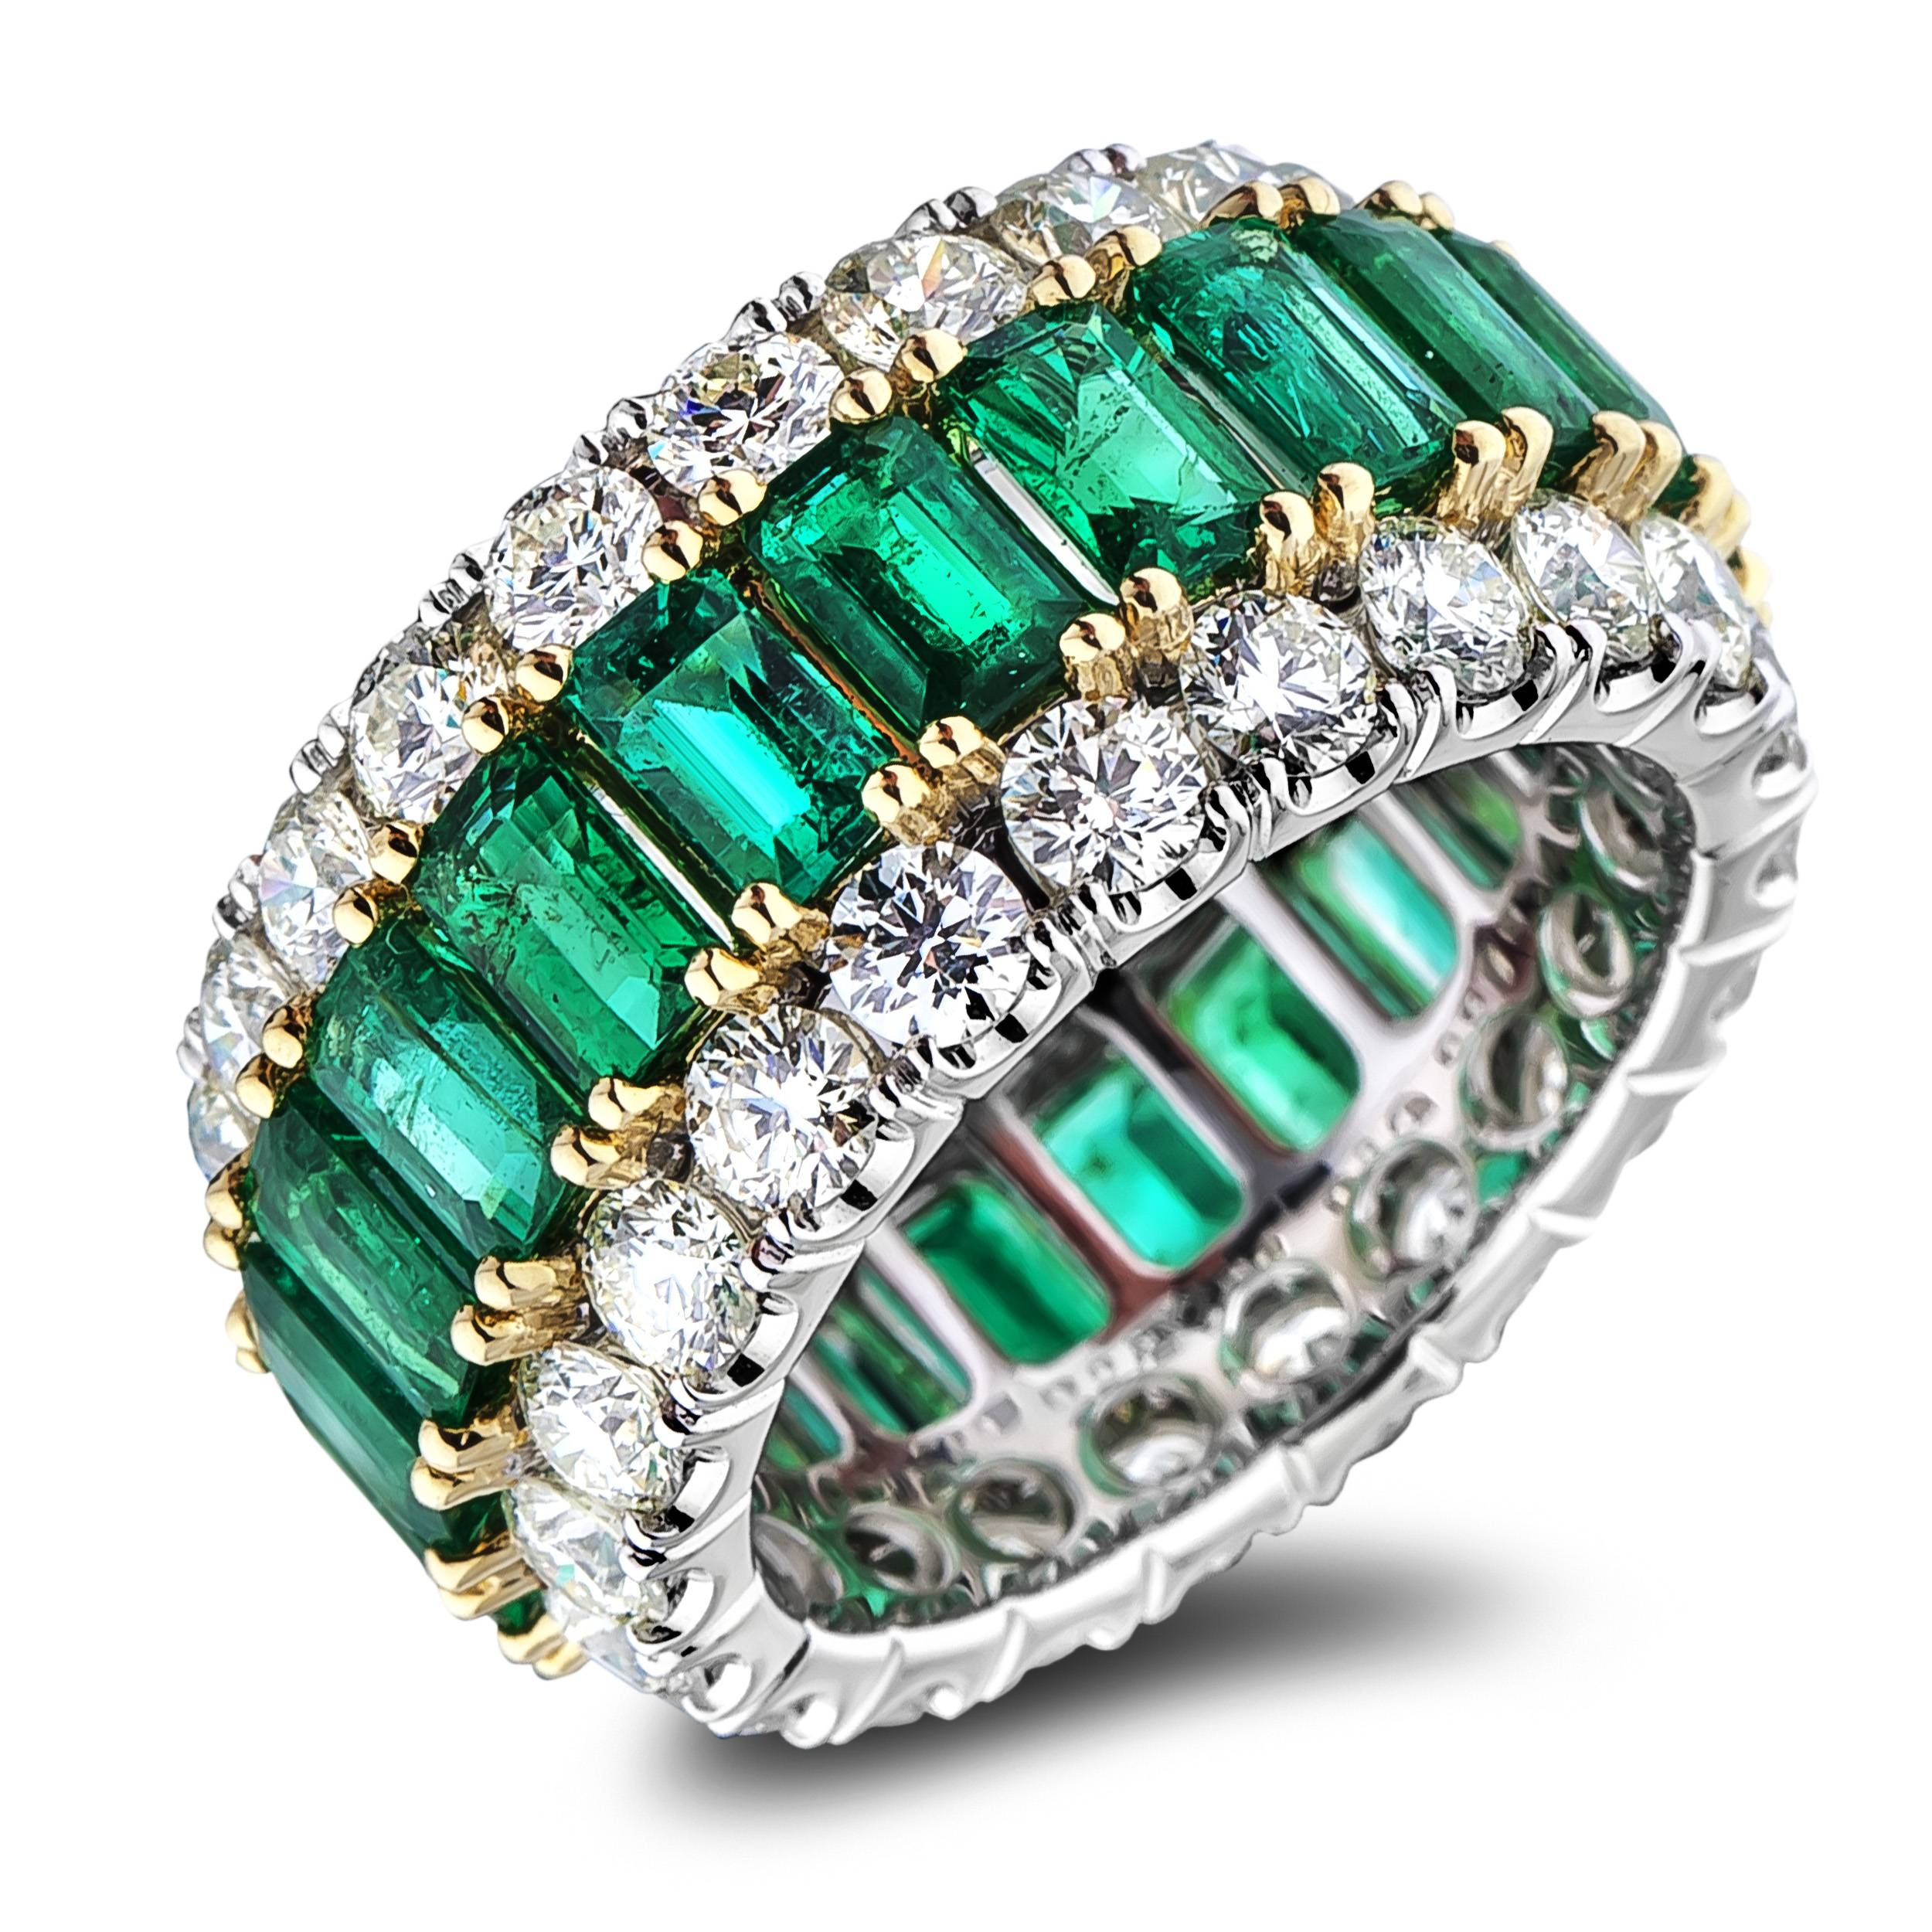 Diamond Anniversary Rings – Sgr1183 – Anaya Fine Jewellery Collection Within Most Current Emerald Anniversary Rings (View 6 of 25)